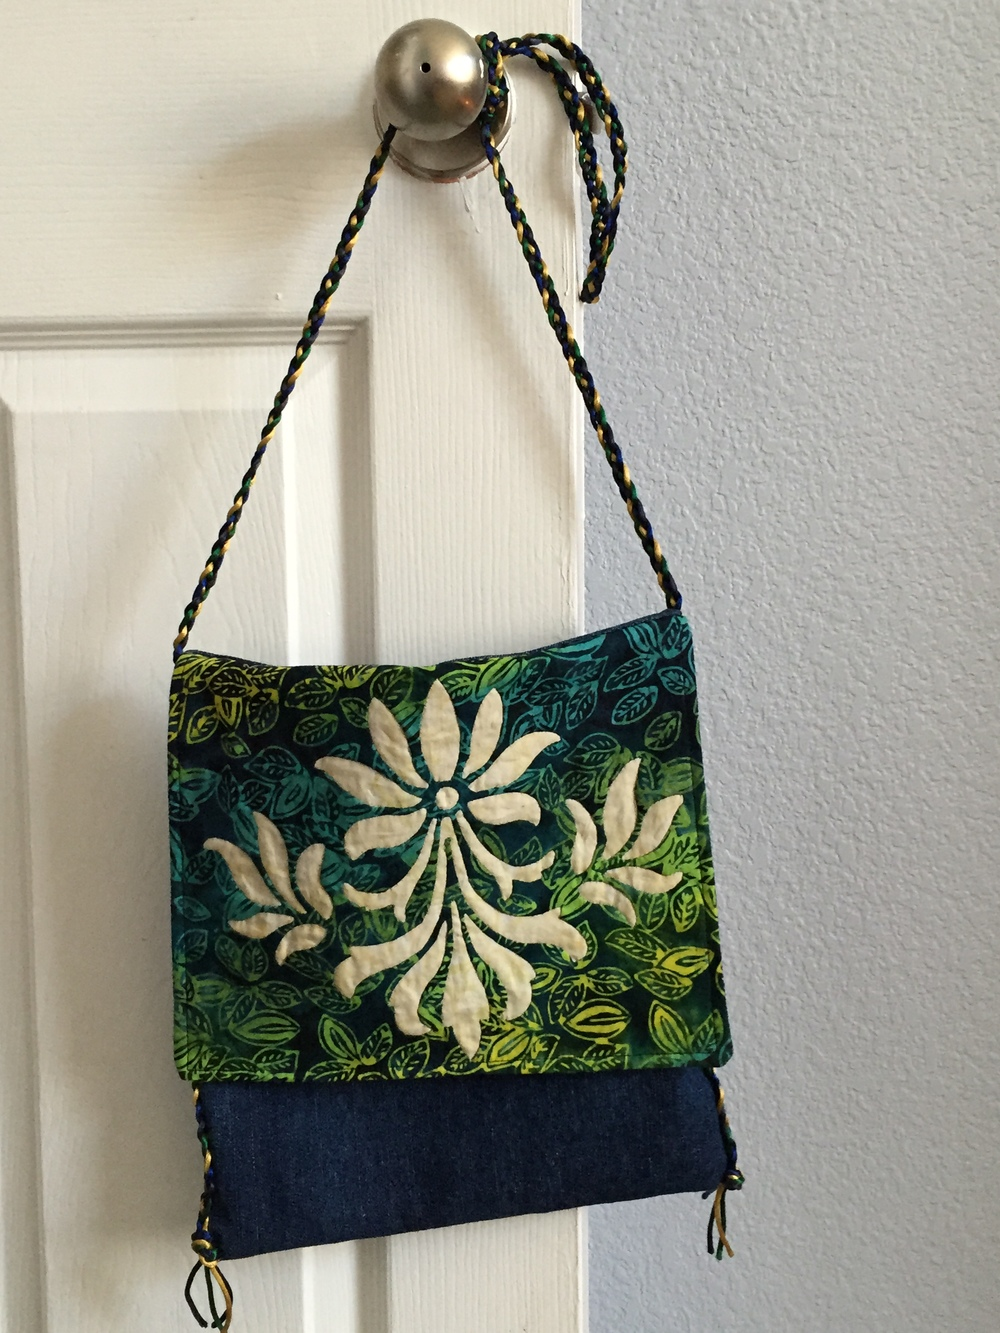 Bag created using Fleur de Lis block on the front flap.